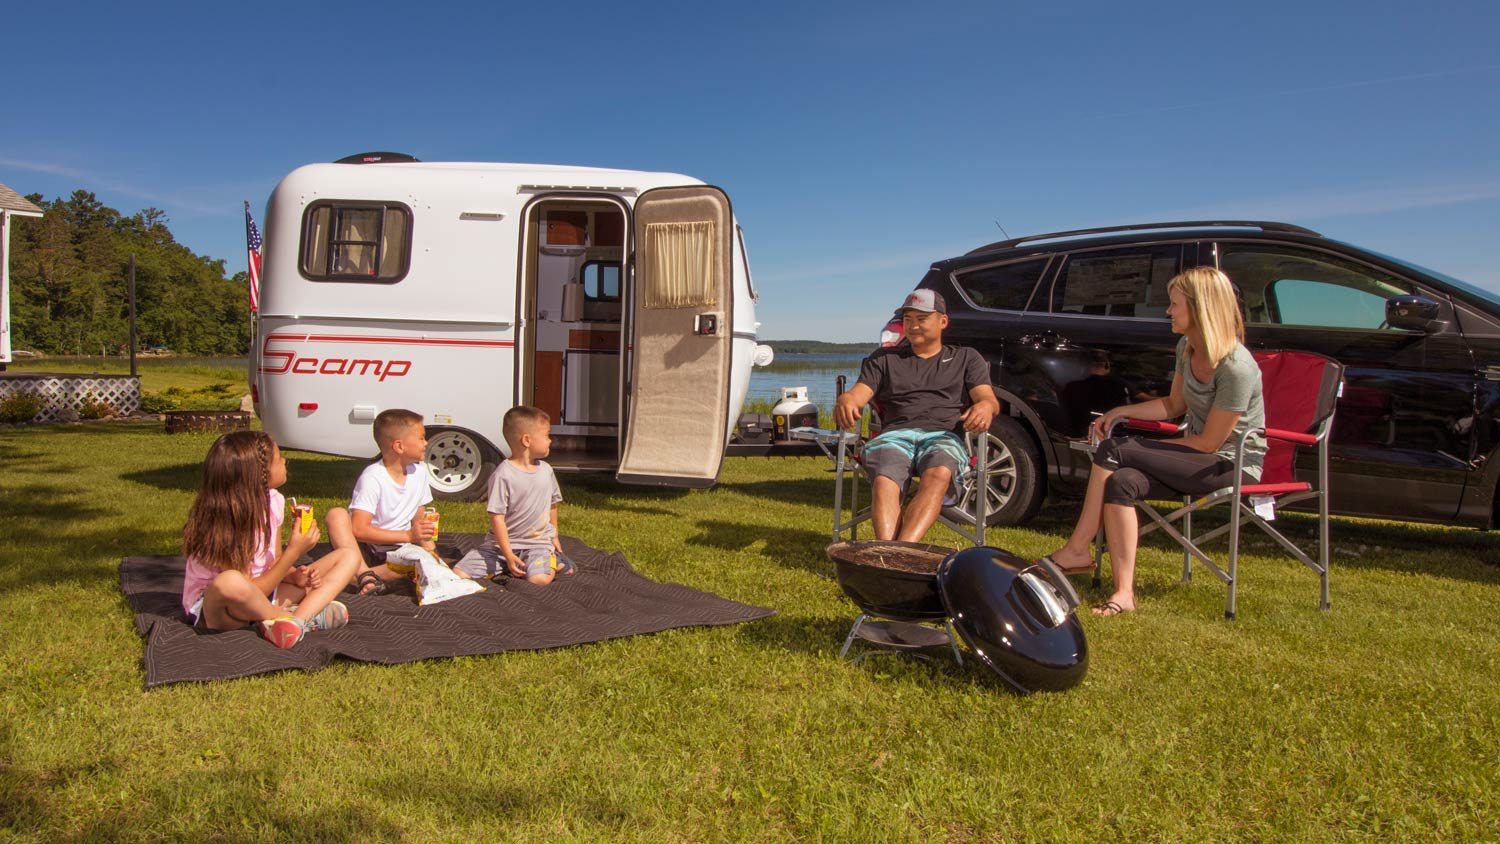 Features to Look for When Shopping for Camper Trailers